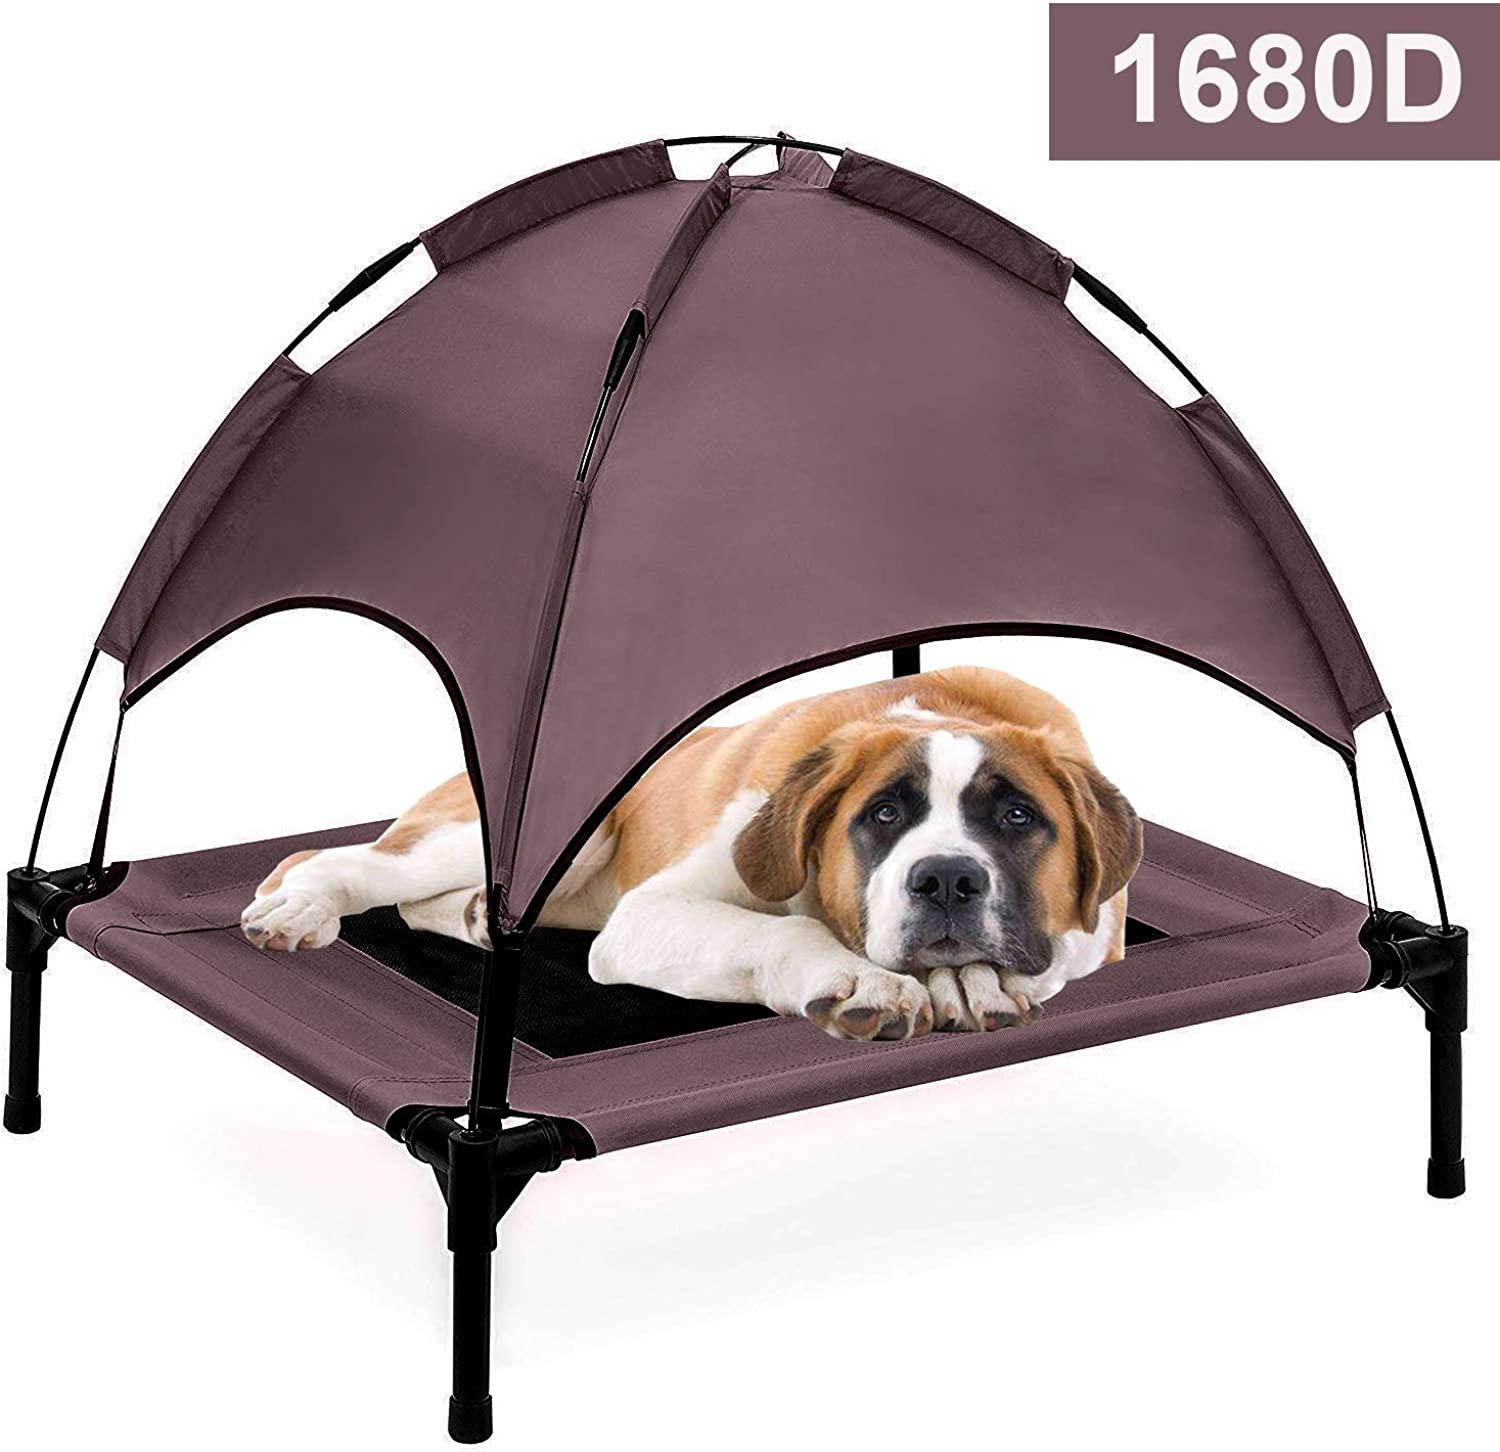 Reliancer Large 30  Elevated Dog Cot with Canopy Shade 1680D Oxford Fabric Outdoor Pet Cat Cooling Bed Tent w Convenient Carrying Bag Indoor Sturdy Steel Frame Portable for Camping Beach (30, Brown)